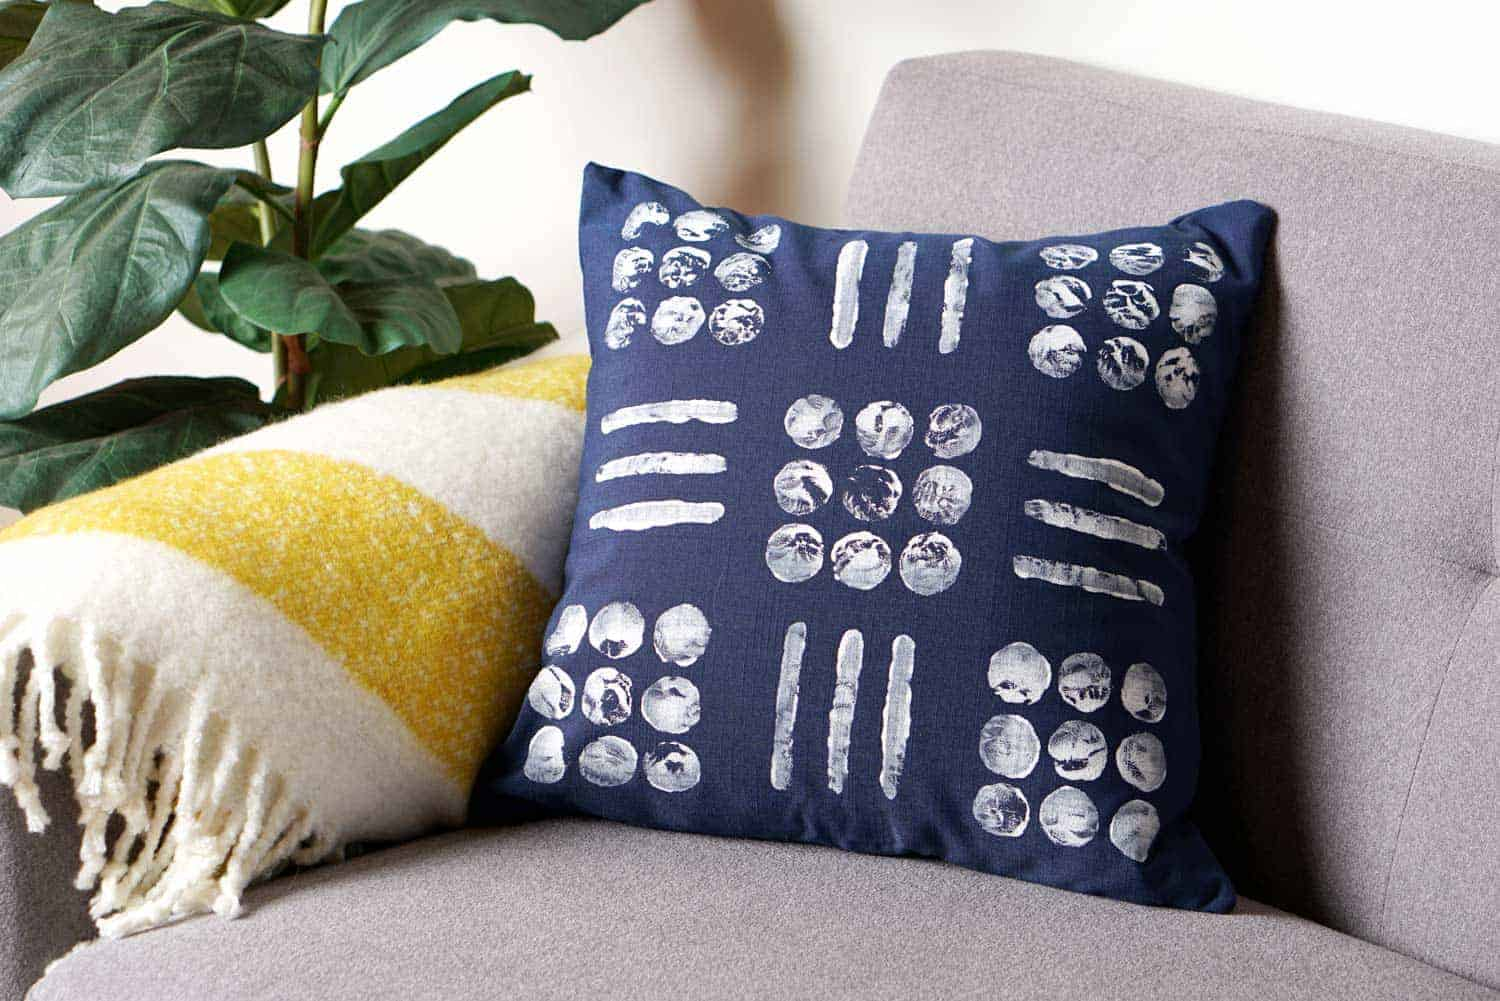 diy mudcloth pillow on a couch